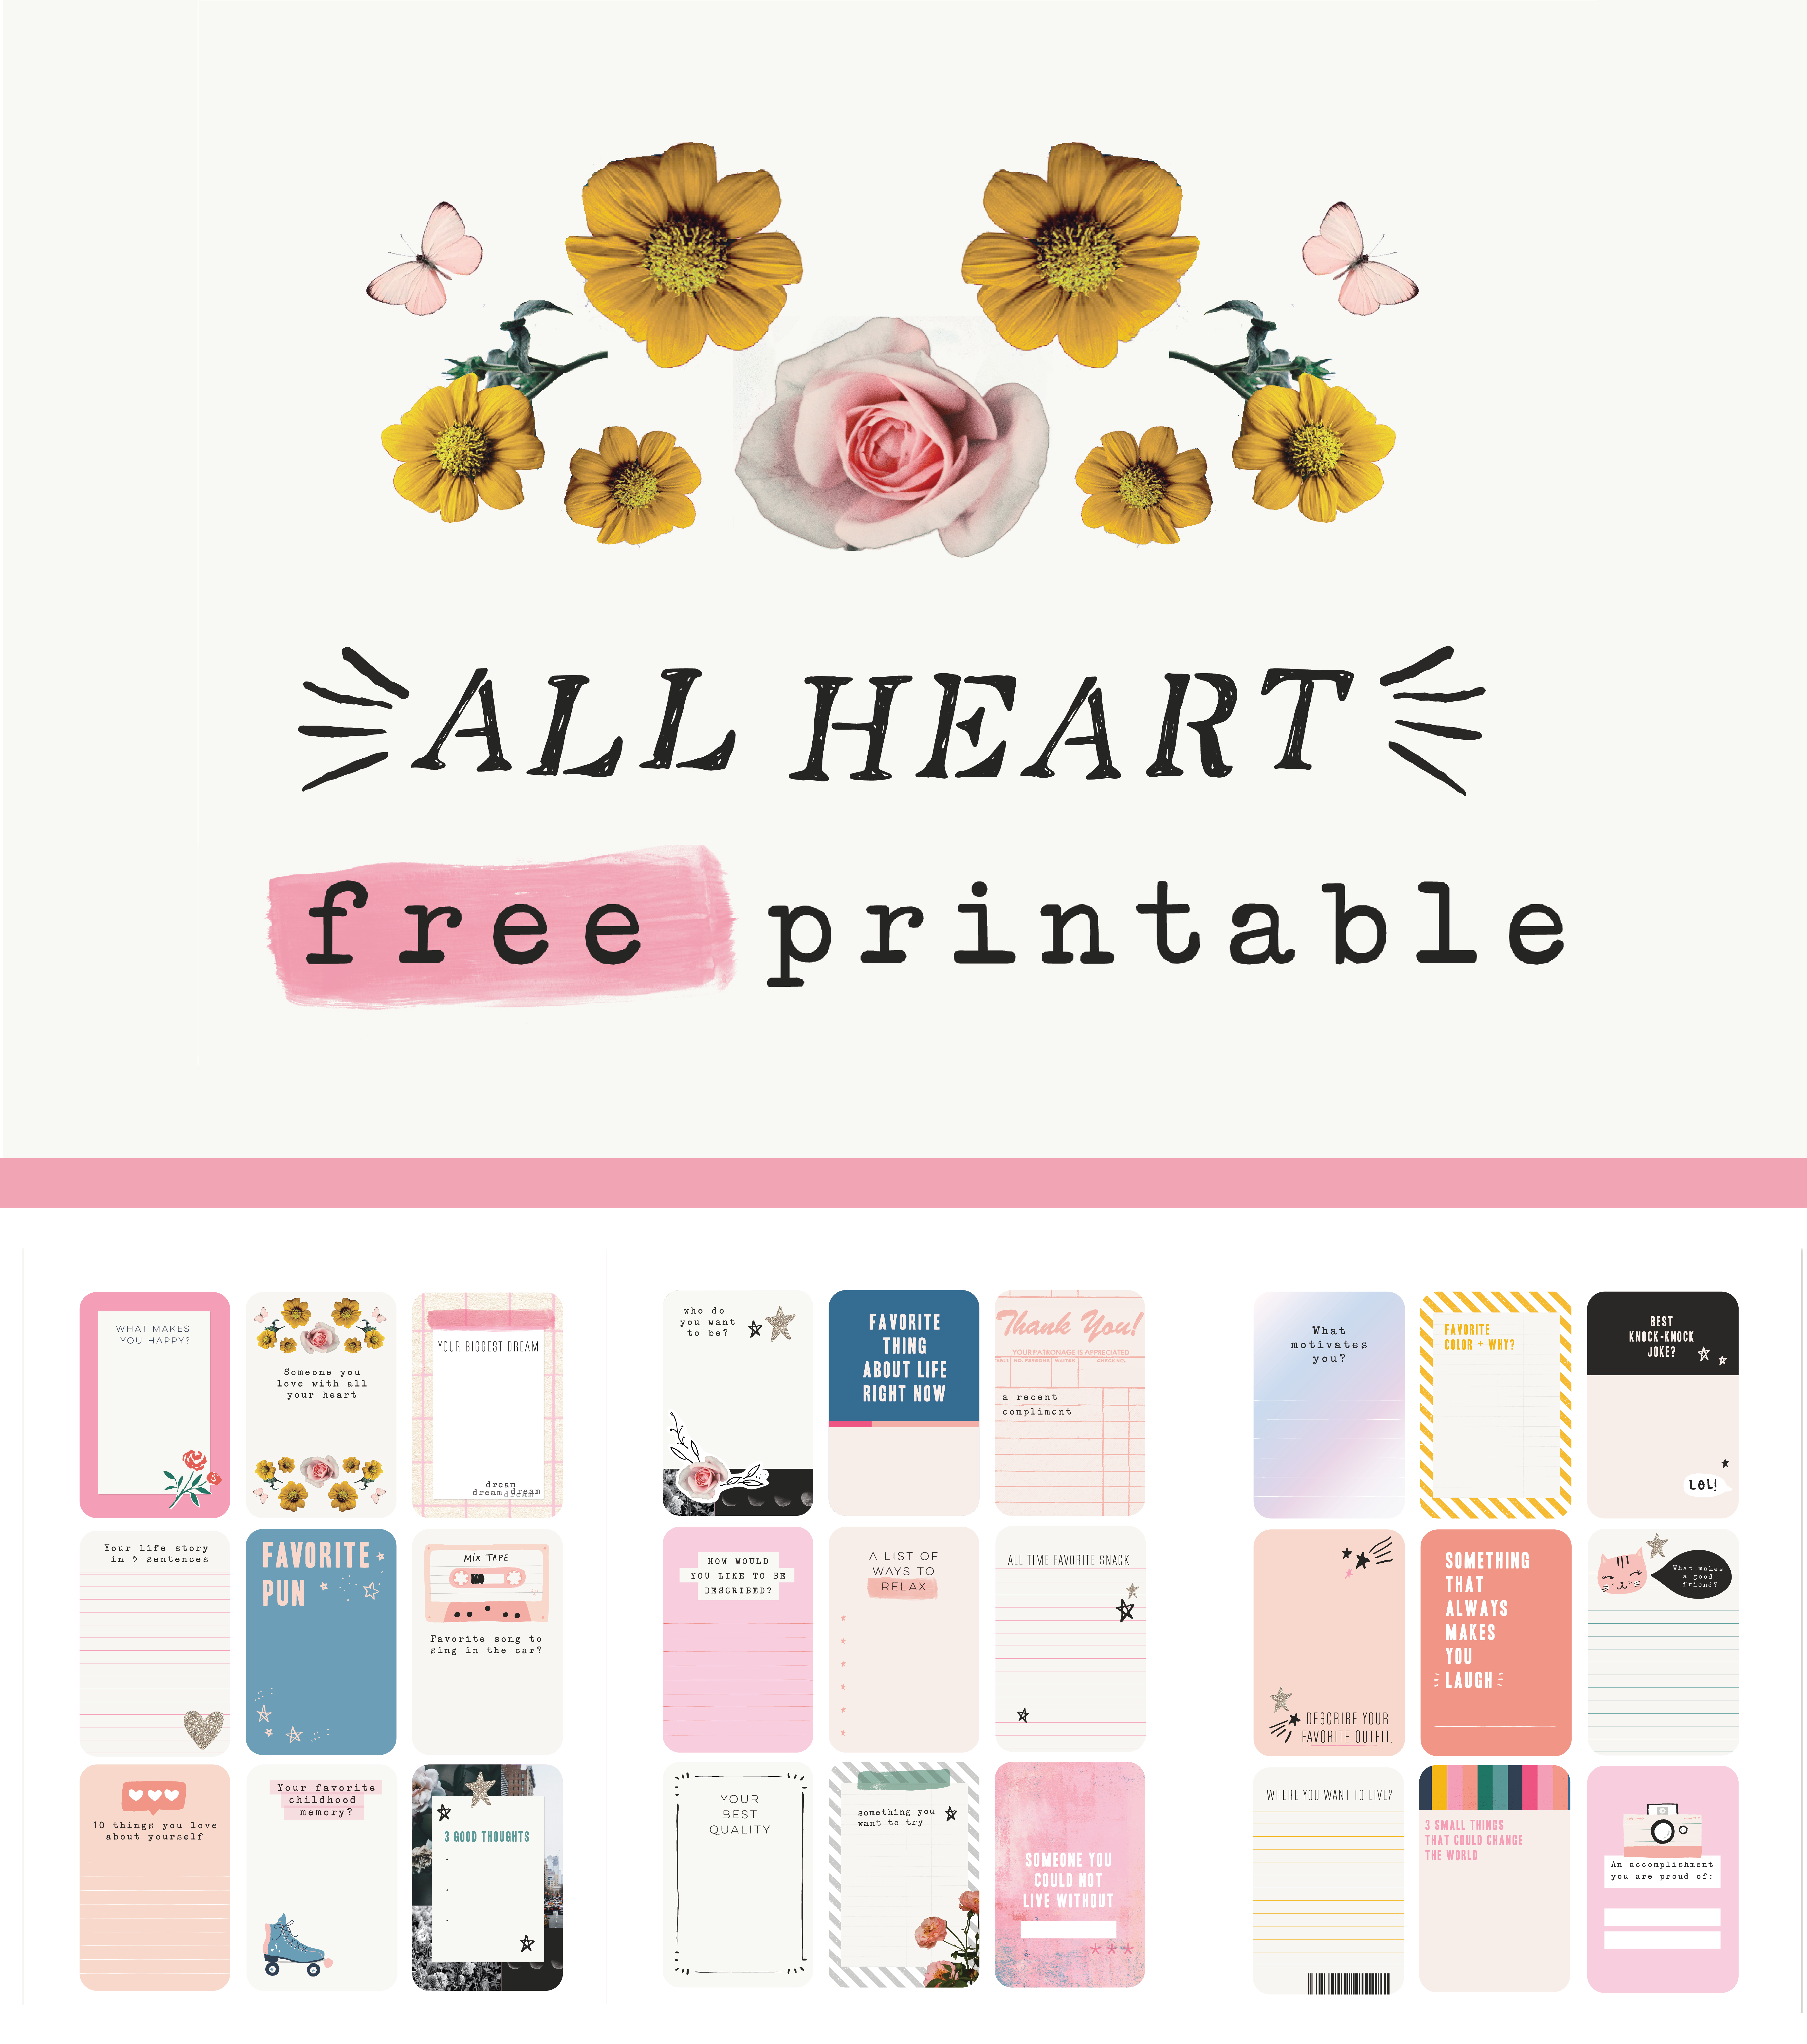 image about Free Printable Journaling Cards named No cost All Centre Journaling Playing cards - Crate Paper